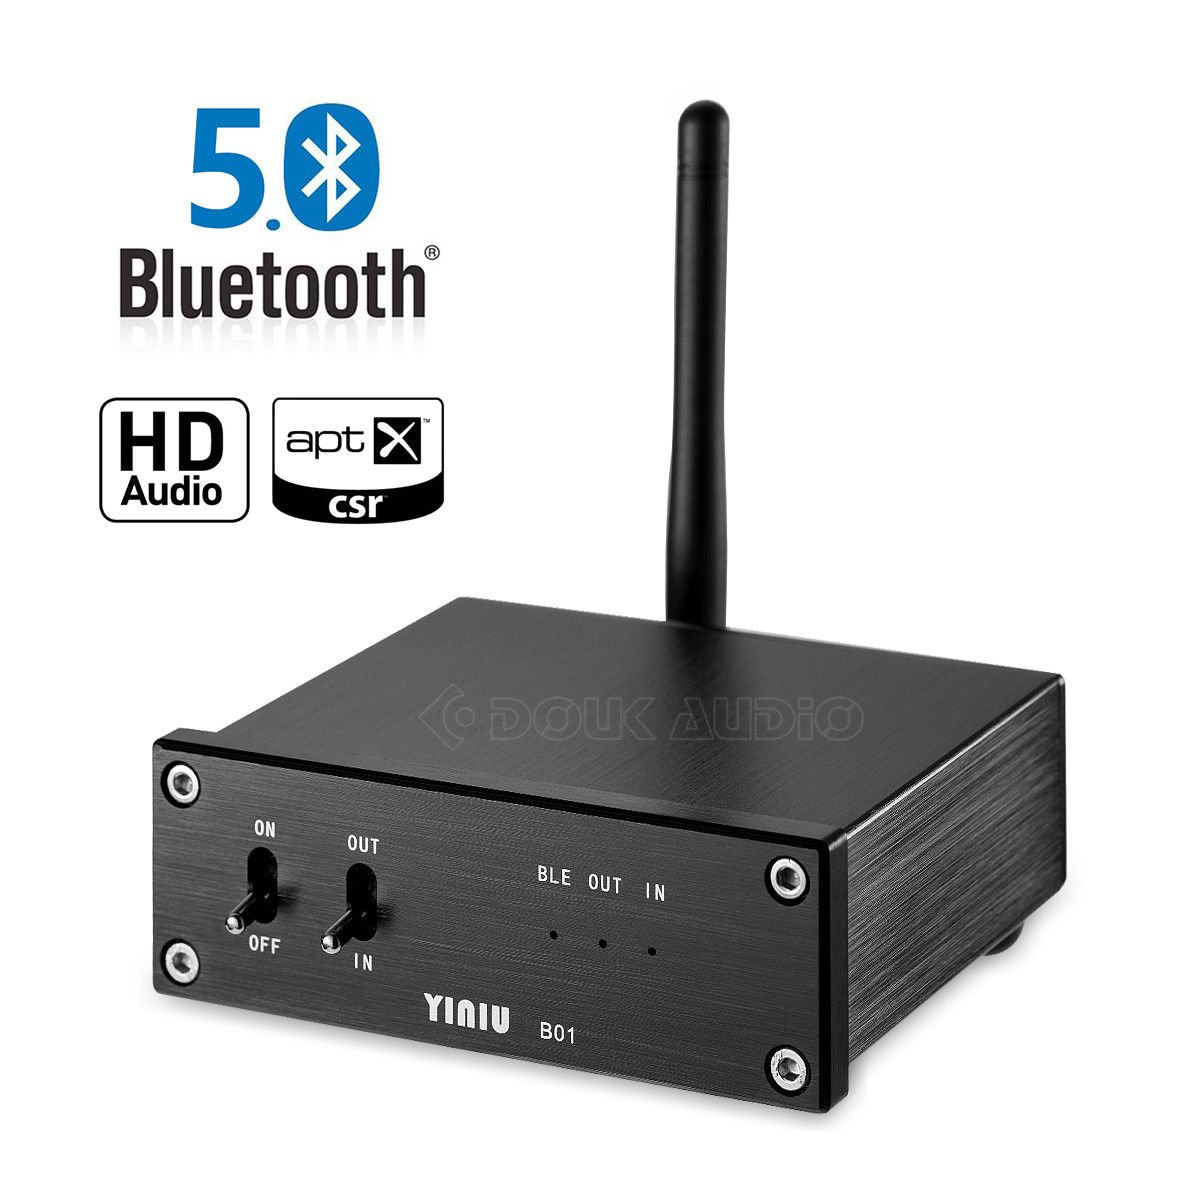 Nobsound Bluetooth 5.0 APTX-HD Lossless Audio Receiver HiFi Decoder DAC COAX/OPT Digital to Analog Converter Home/Car Audio (Bluetooth 5.0) by Douk Audio